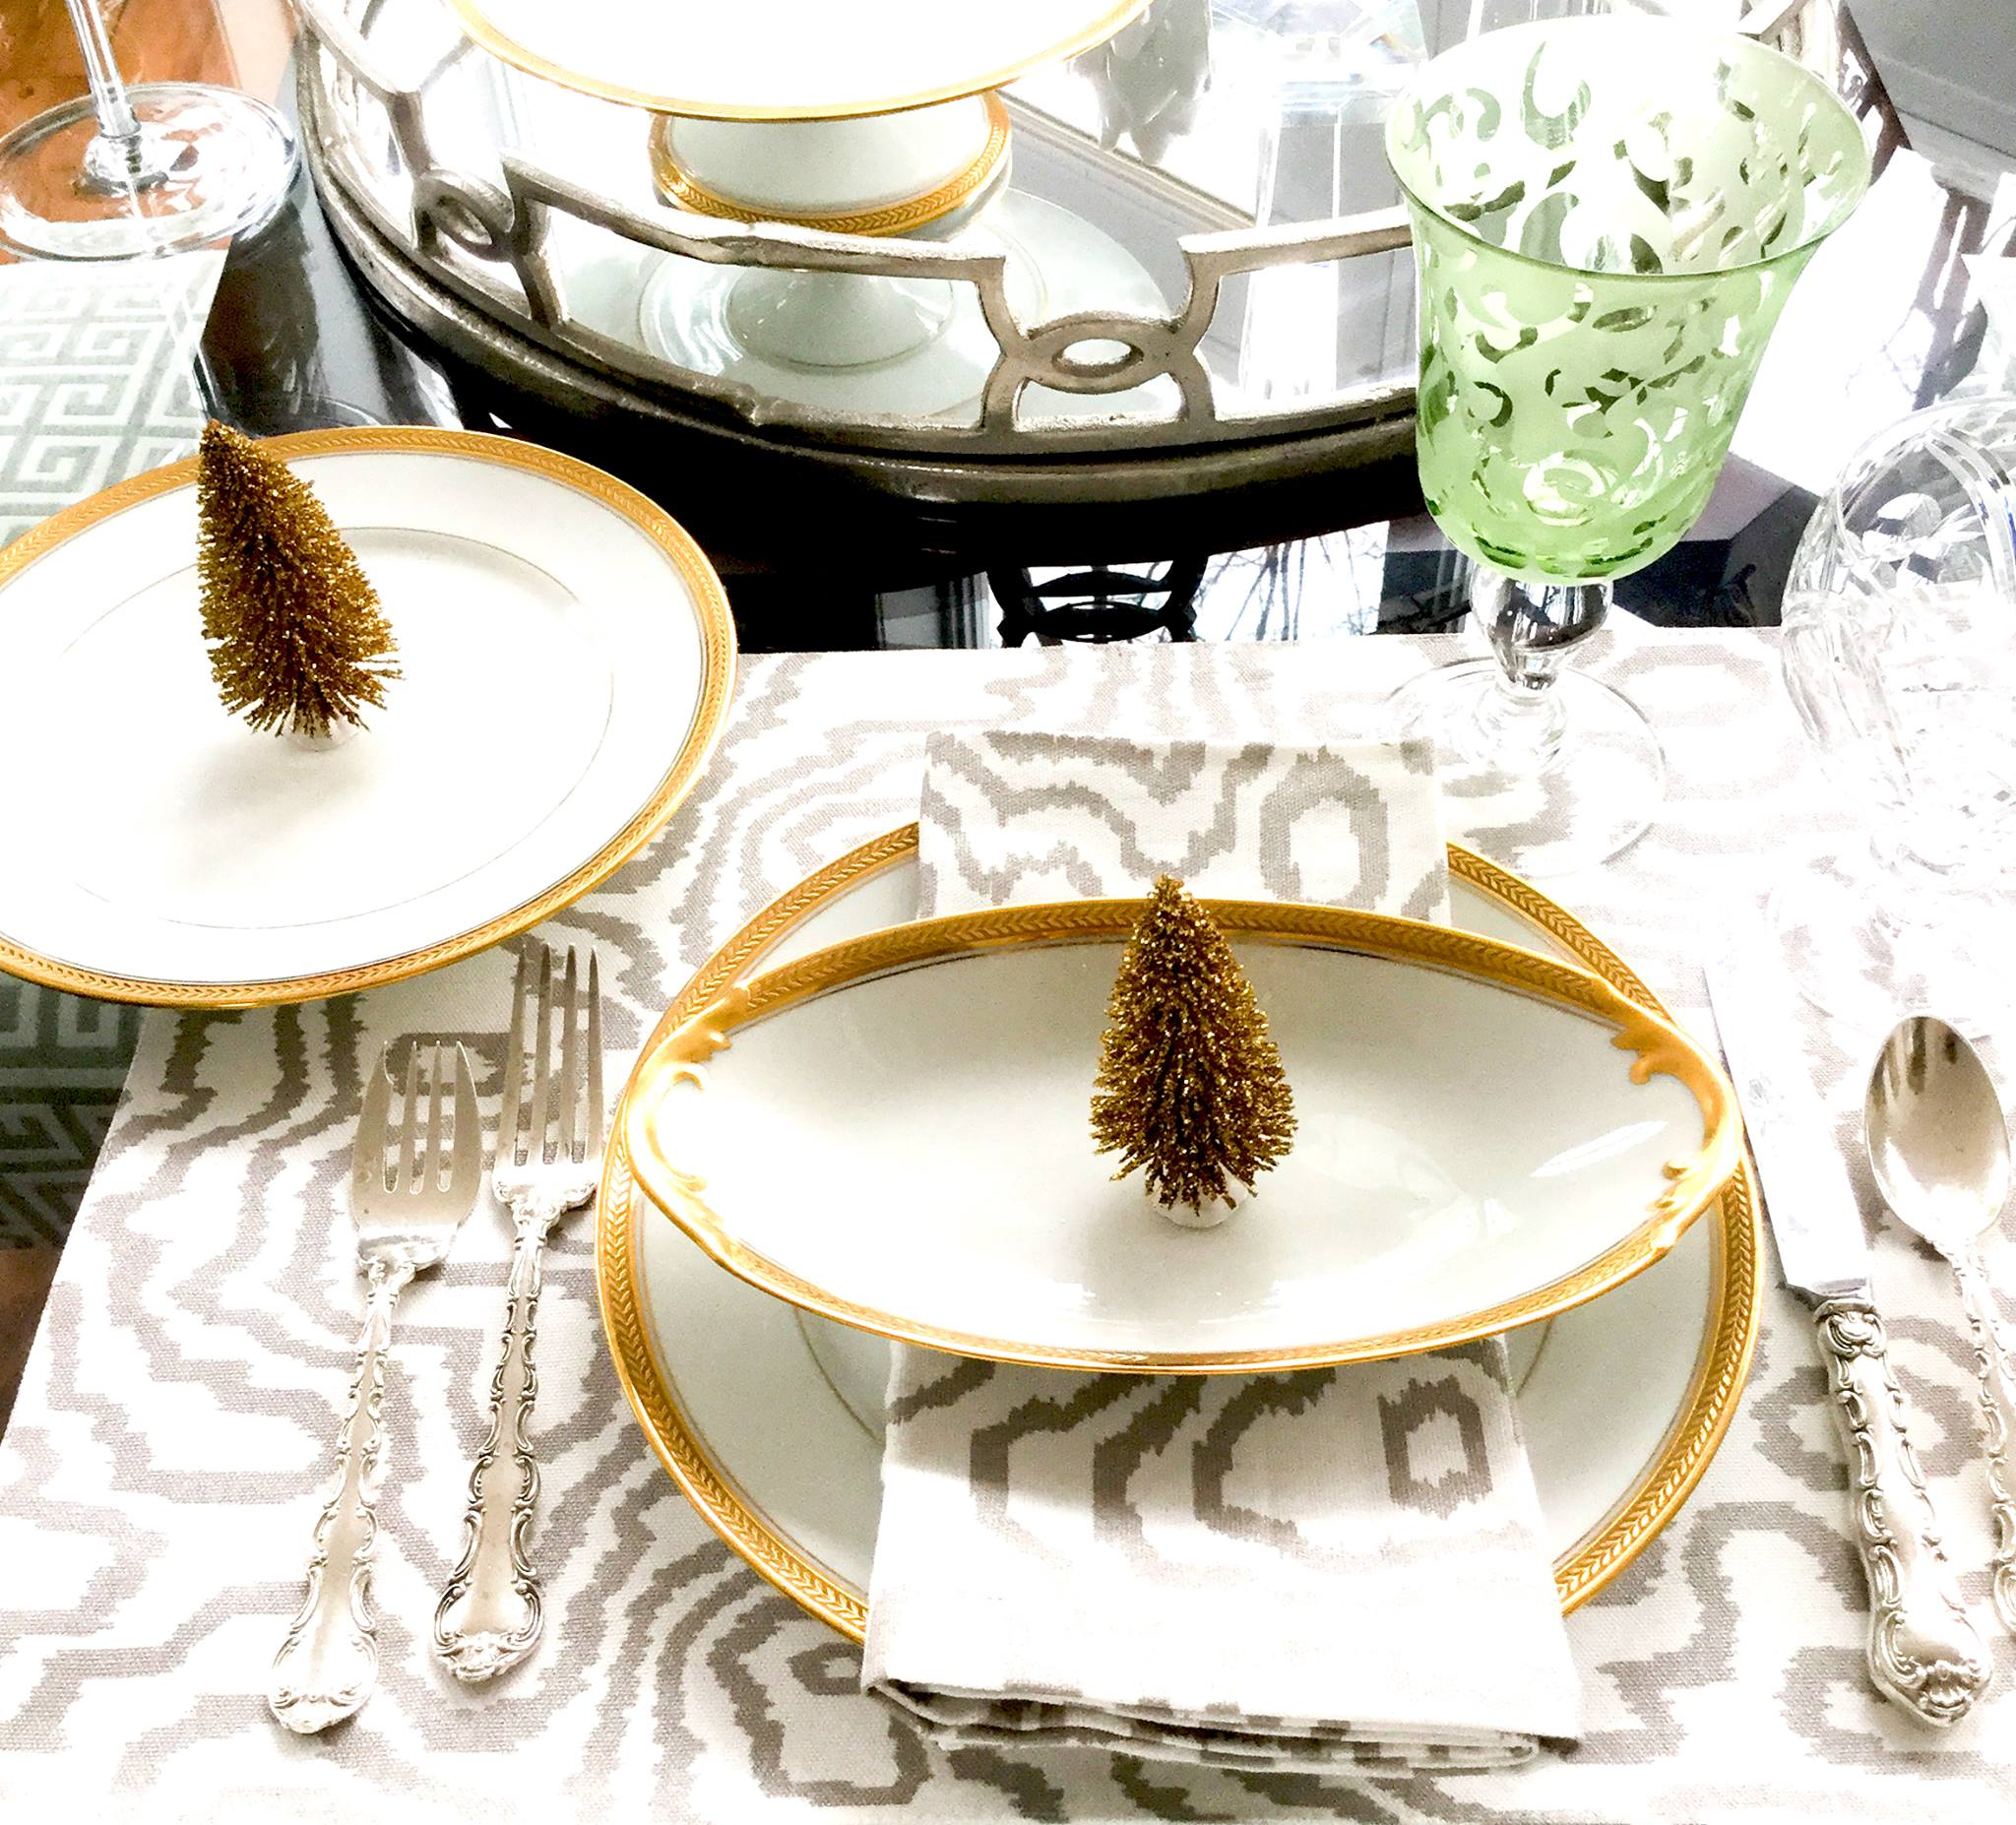 Antique Limoges; timeless